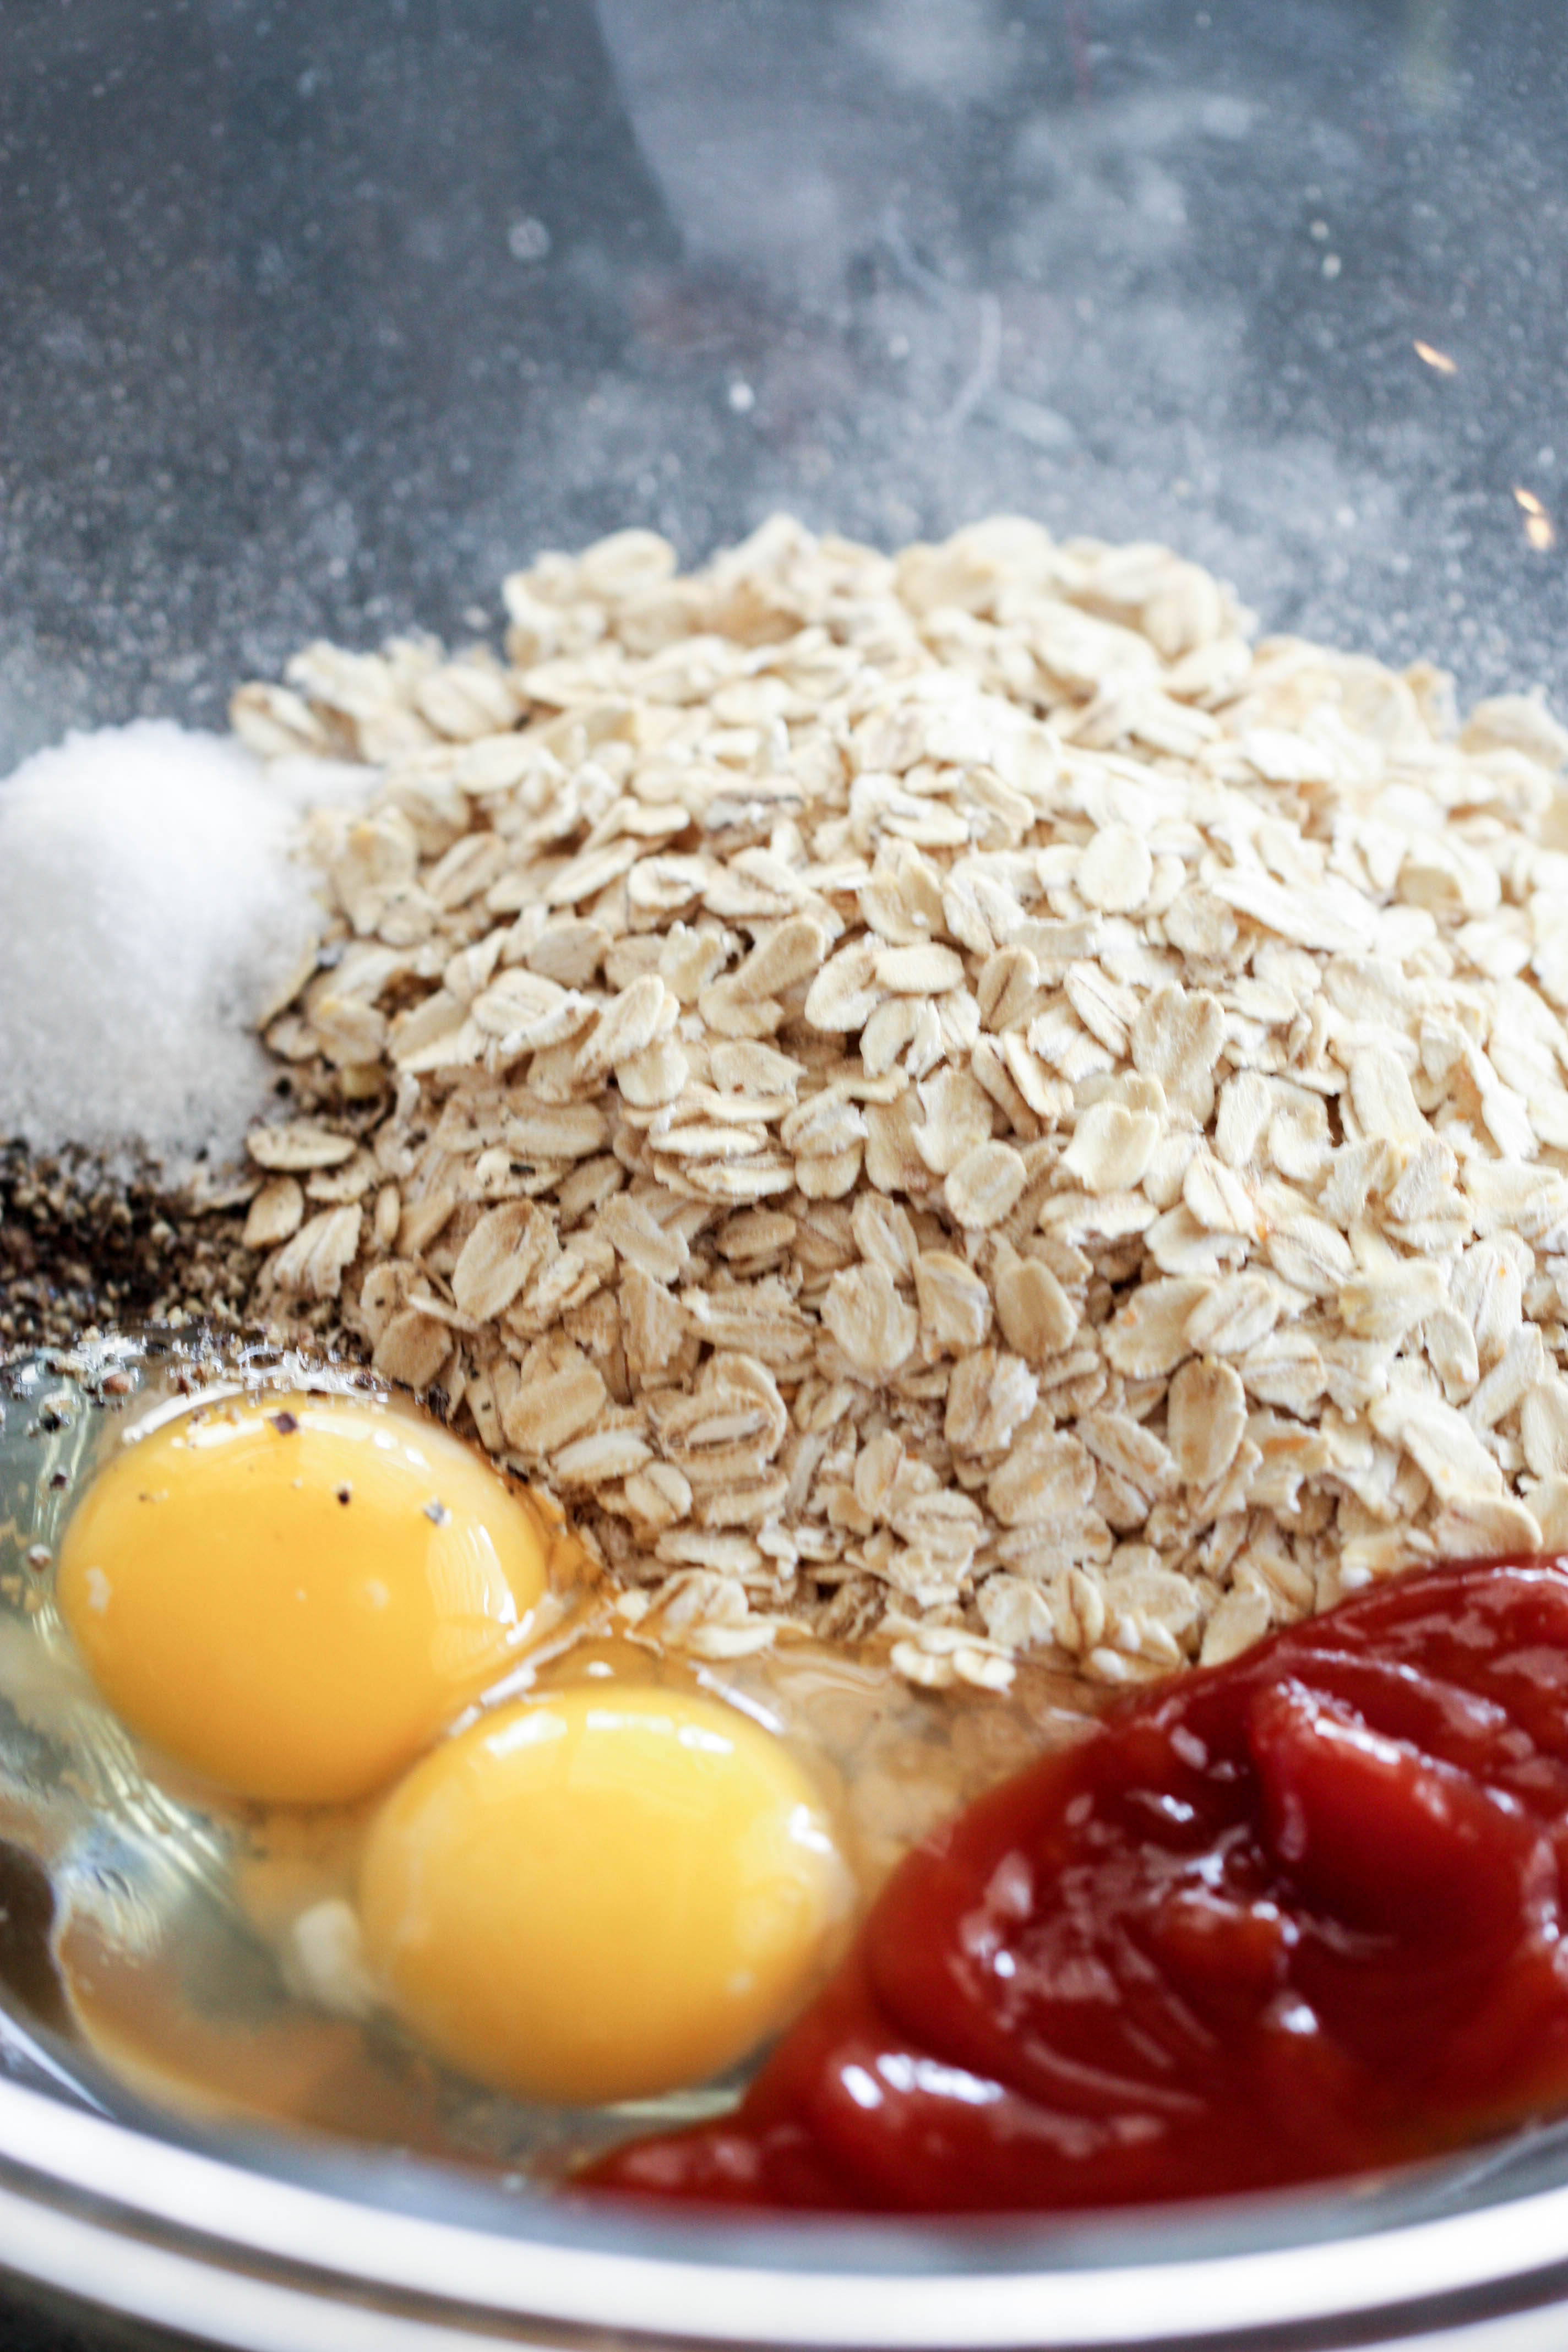 Ingredients for Turkey Meatloaf in mixing bowl